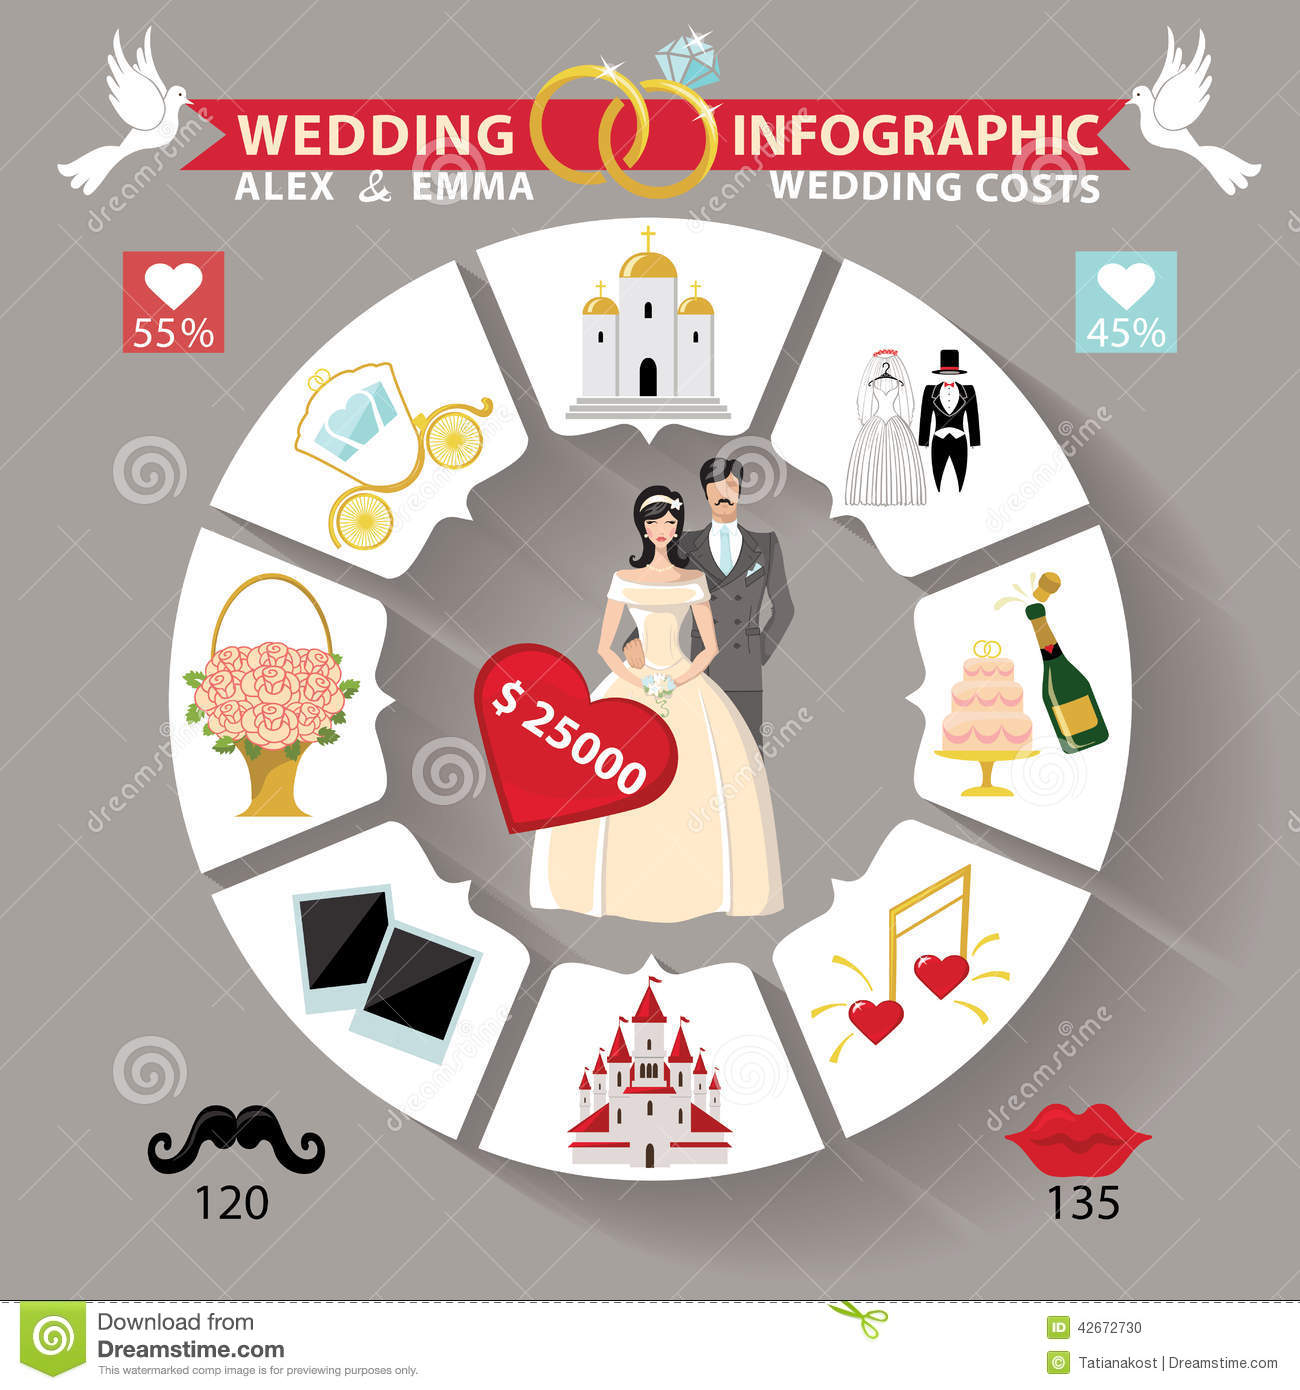 Wedding Infographics With Cartoon Bride And GroomStatistics Design Template For DayVector Circle Business Concepts Flat Icons Loop